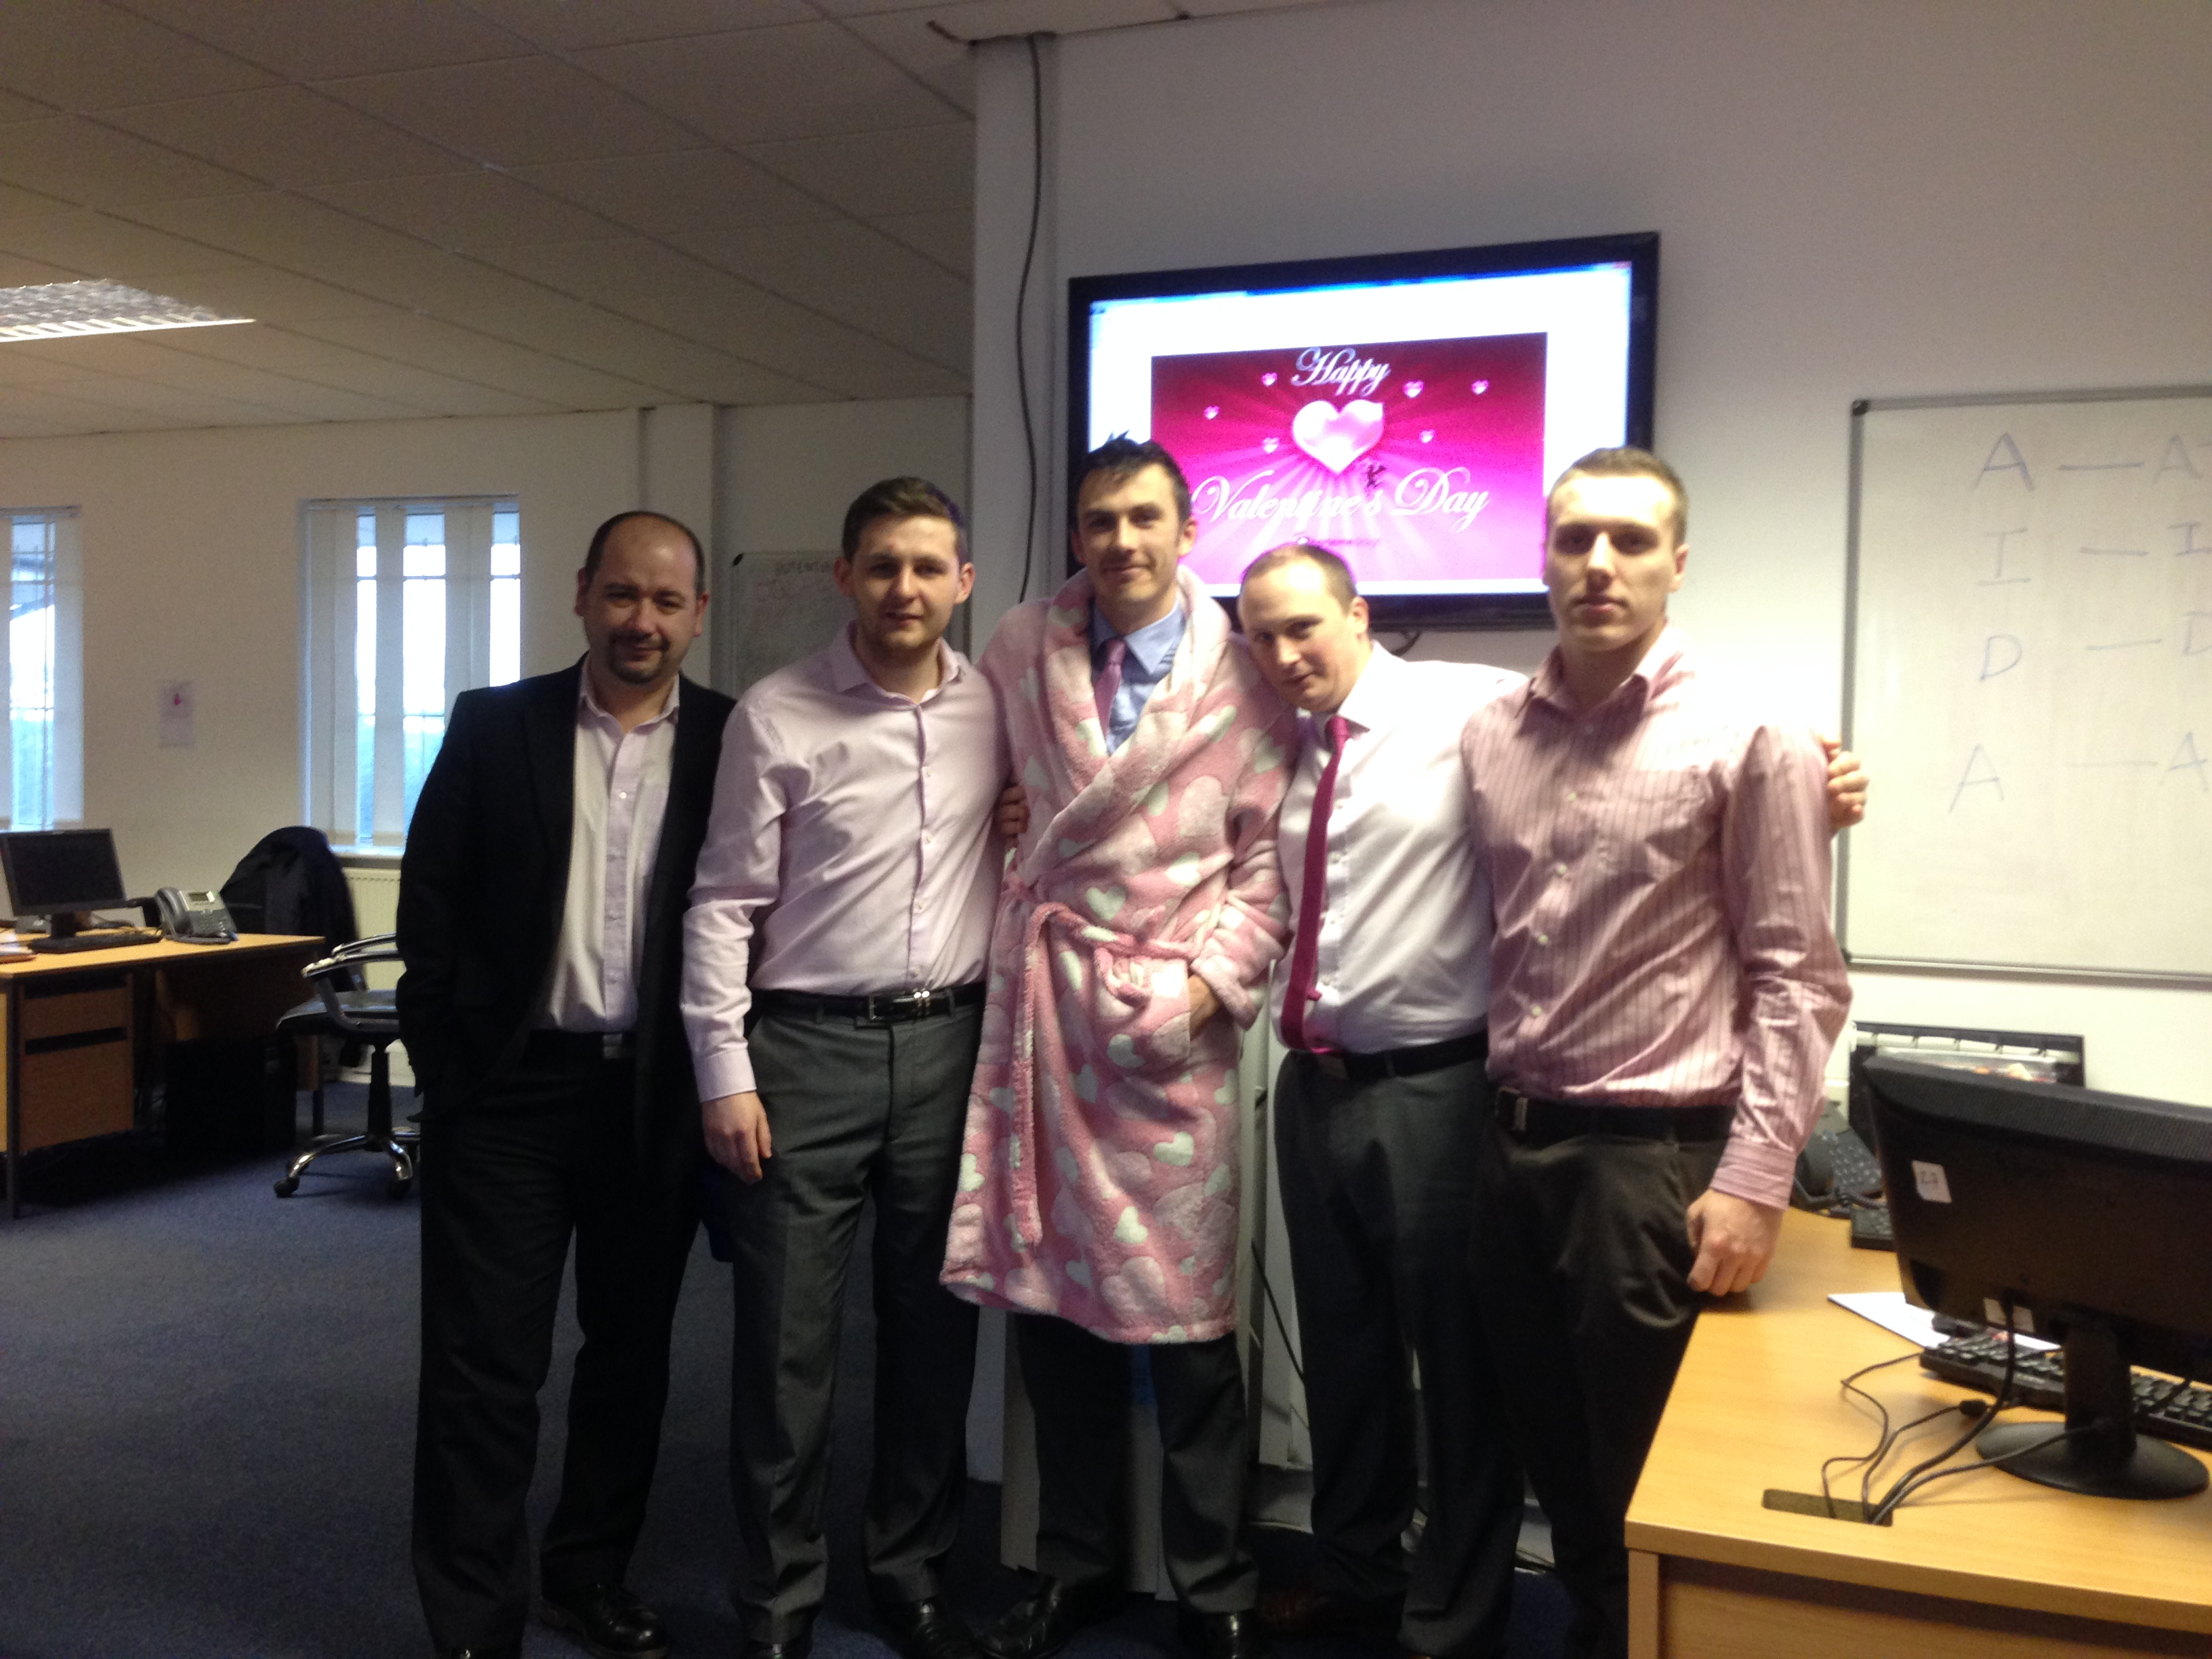 Limo Broker are Pretty in Pink Supporting Breast Cancer Awareness